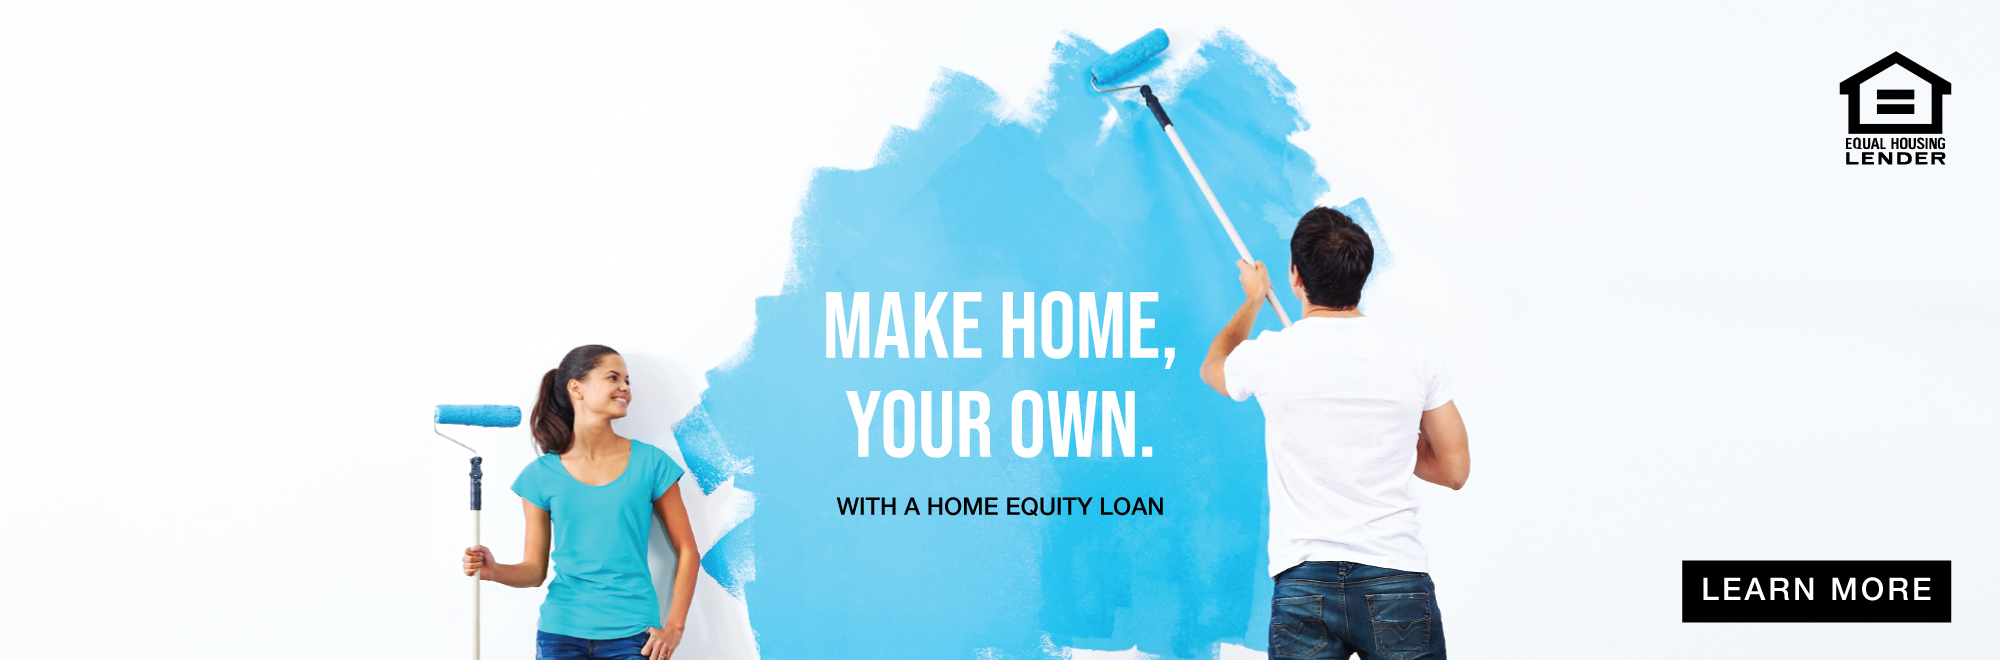 Make home your own with a home equity loan